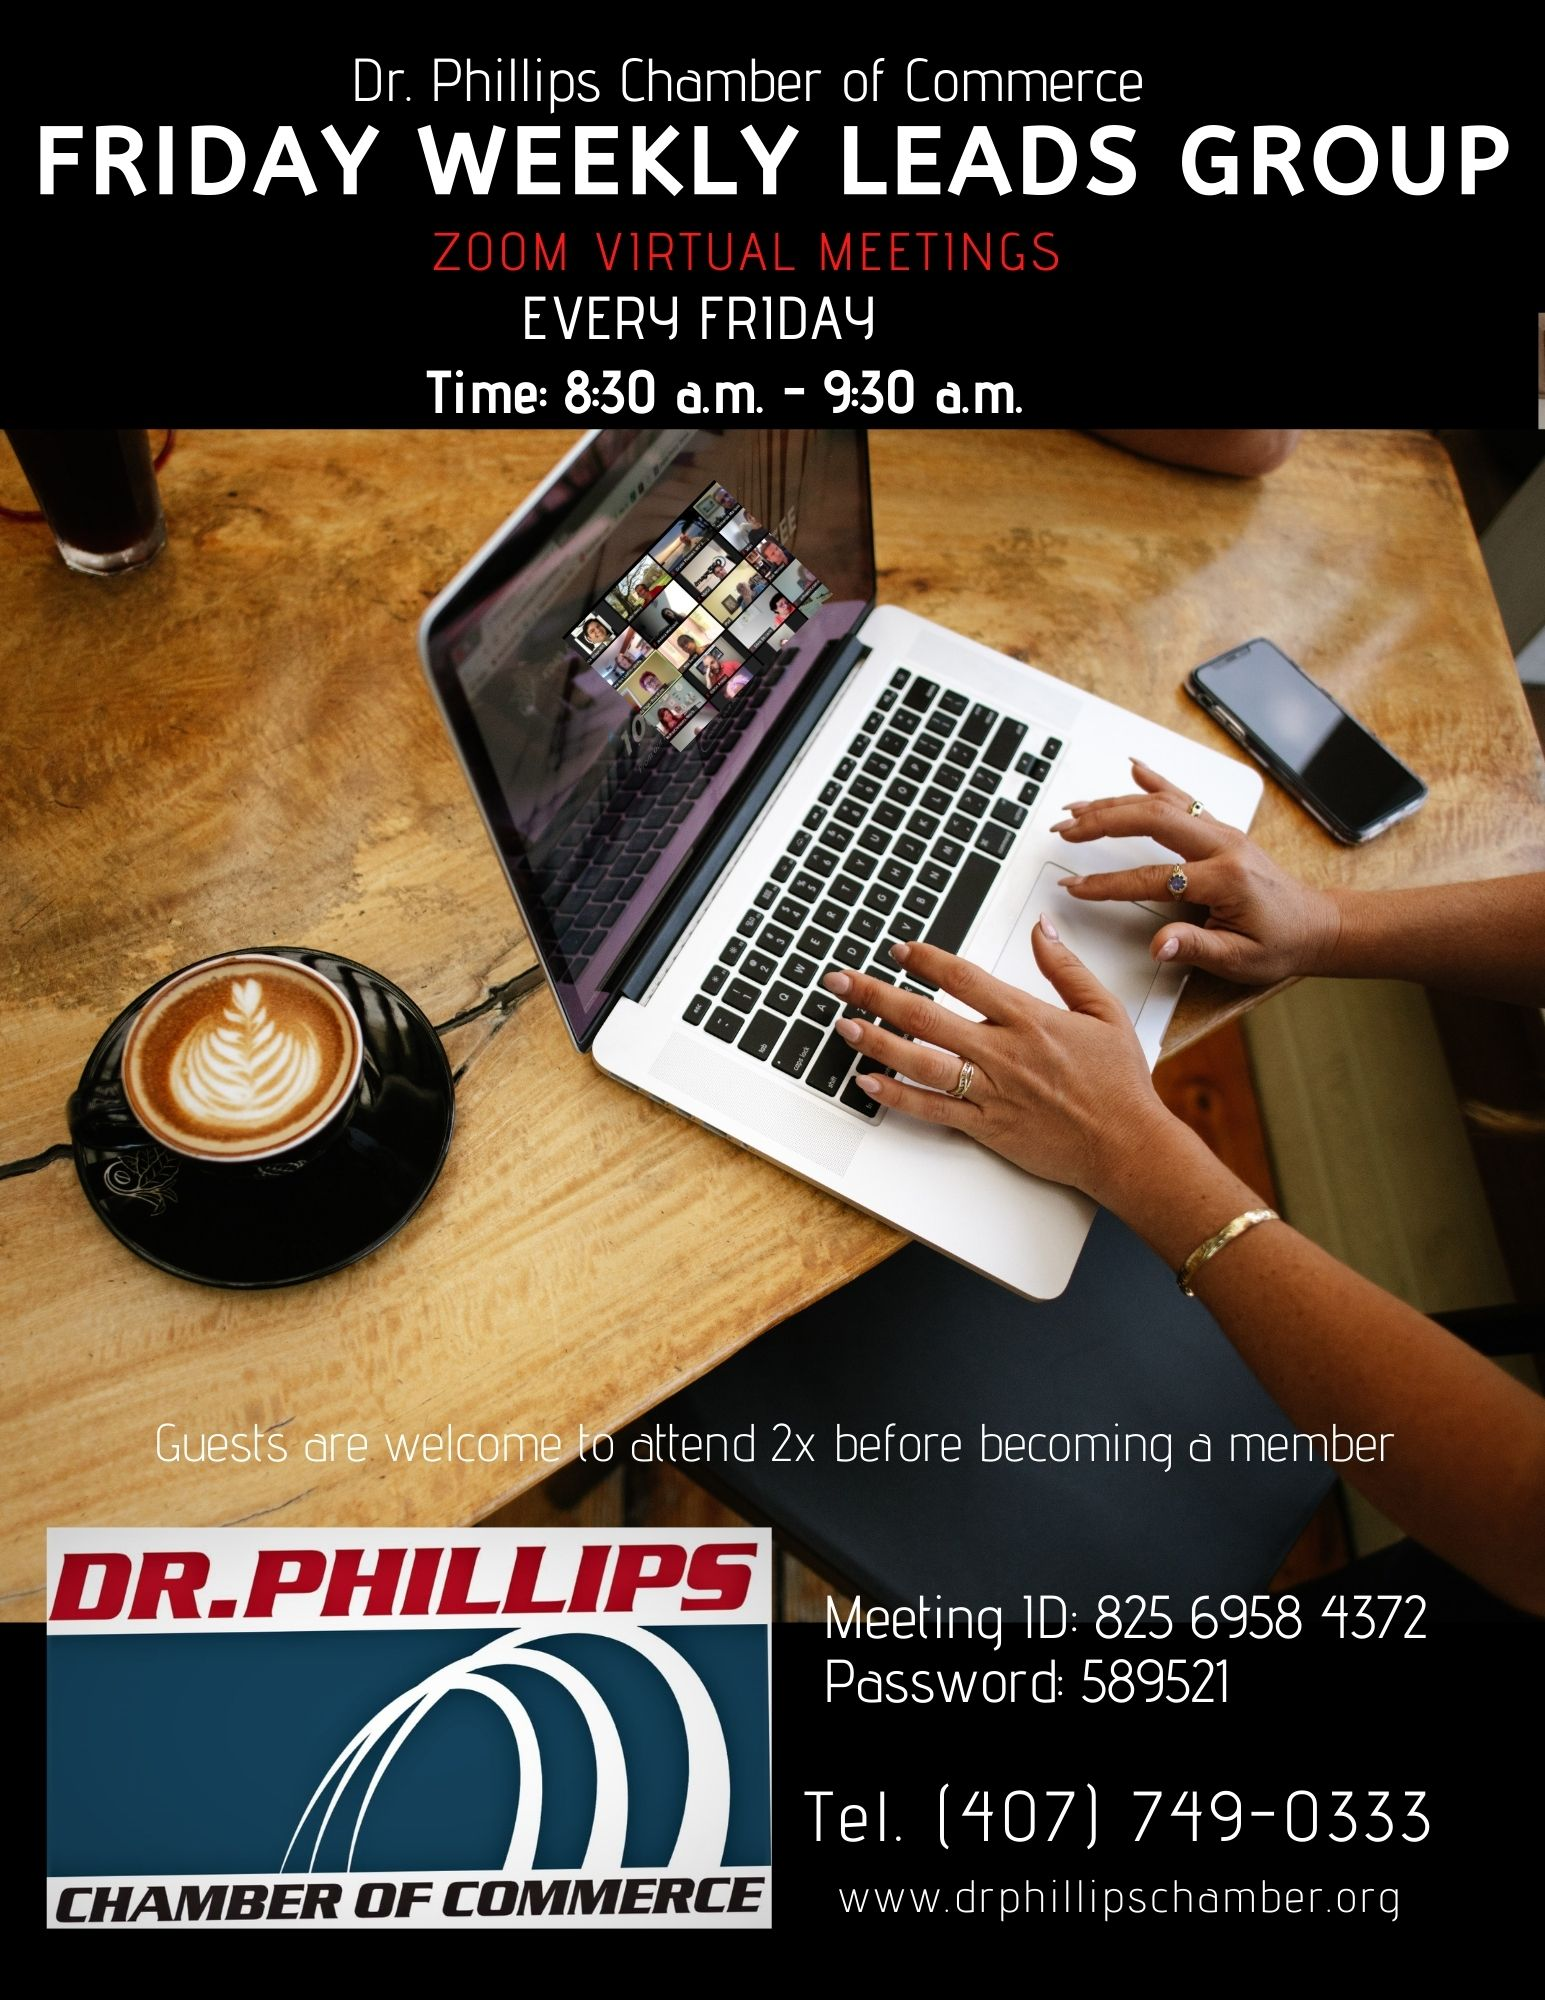 Dr. Phillips Chamber of Commerce Orlando Chamber of Commerce Networking Group